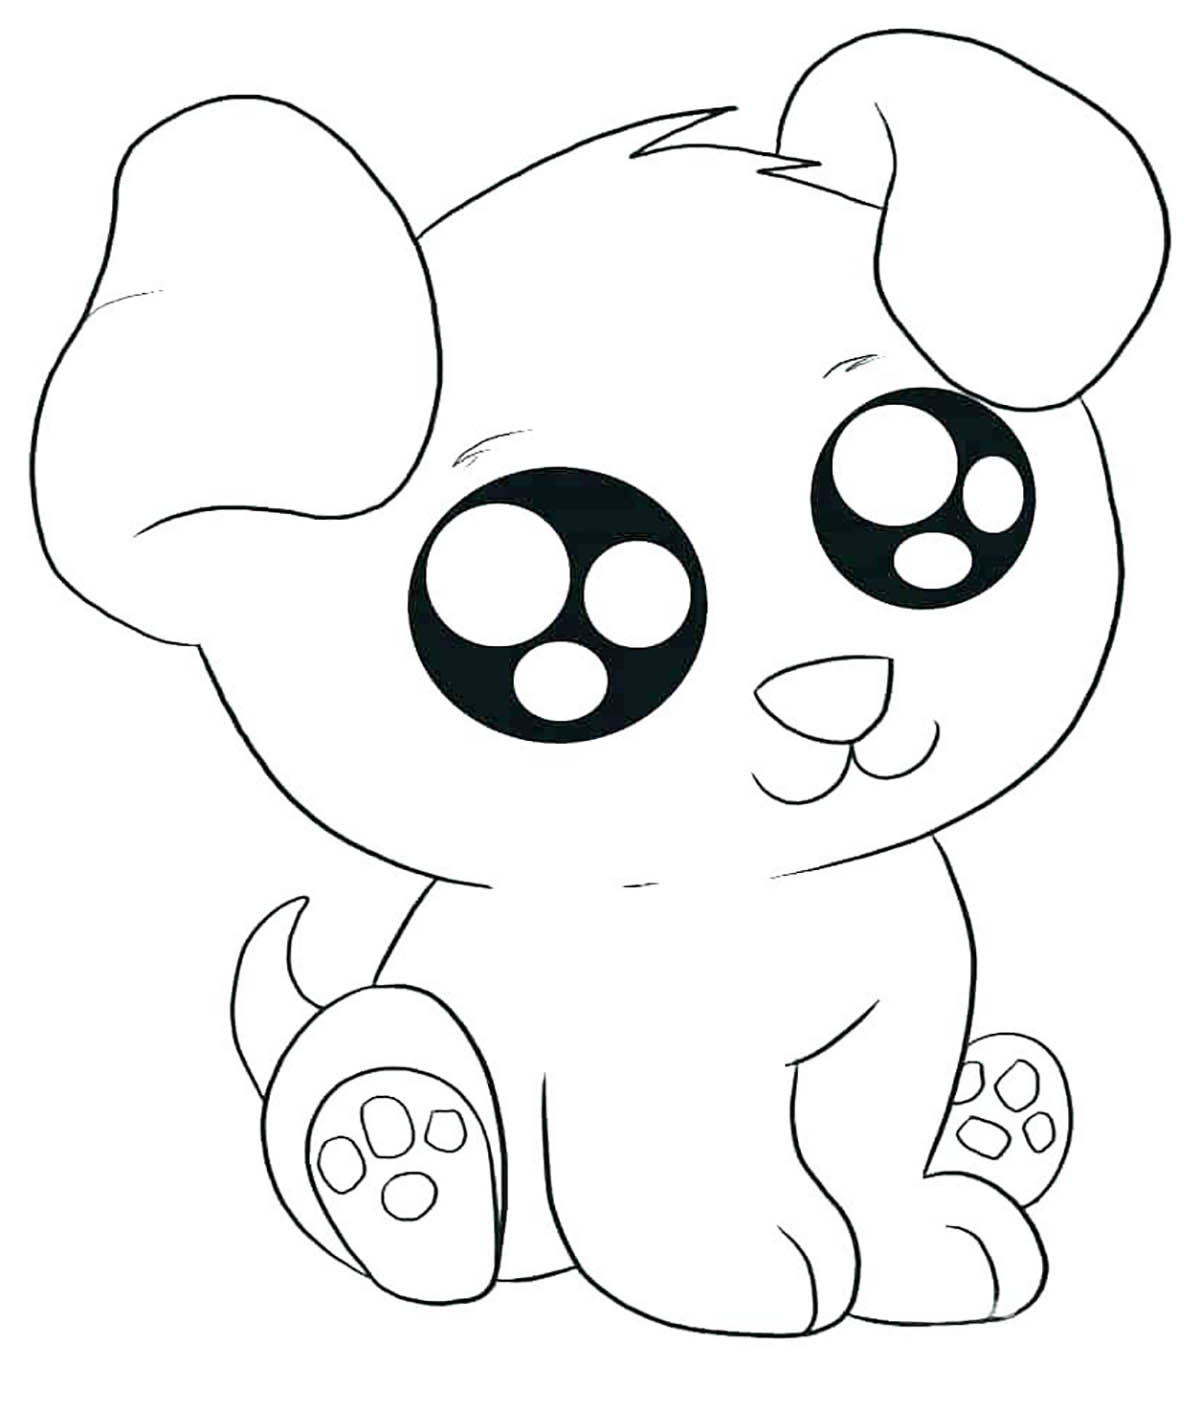 Dogs coloring pages 70